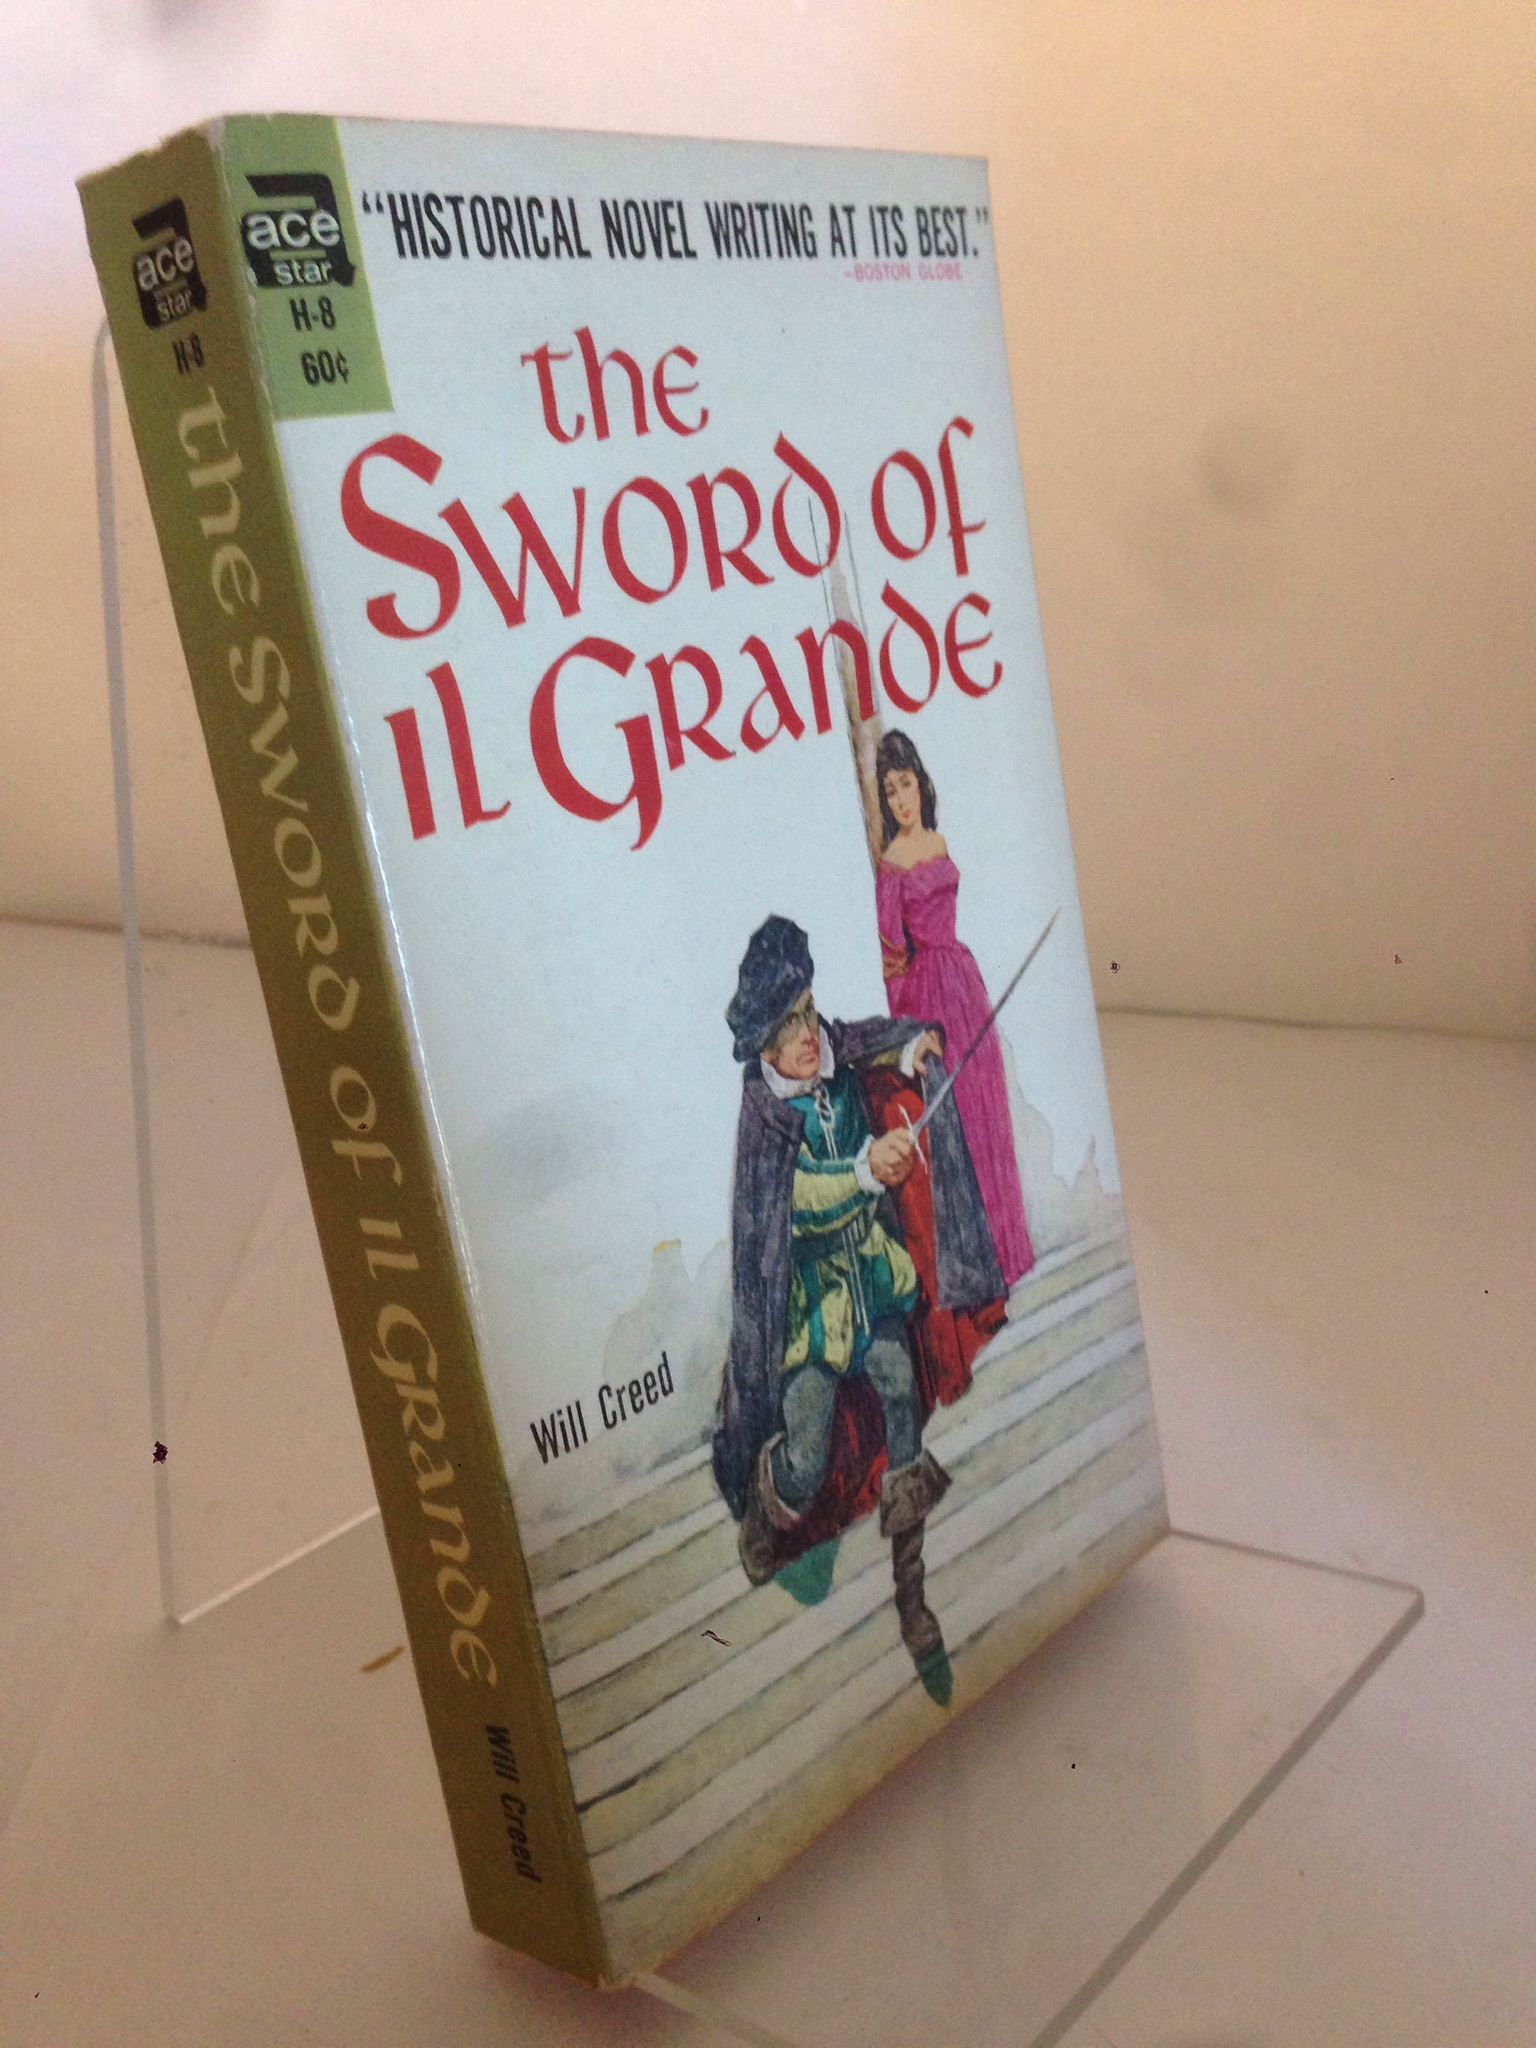 Image for The Sword of Il Grande